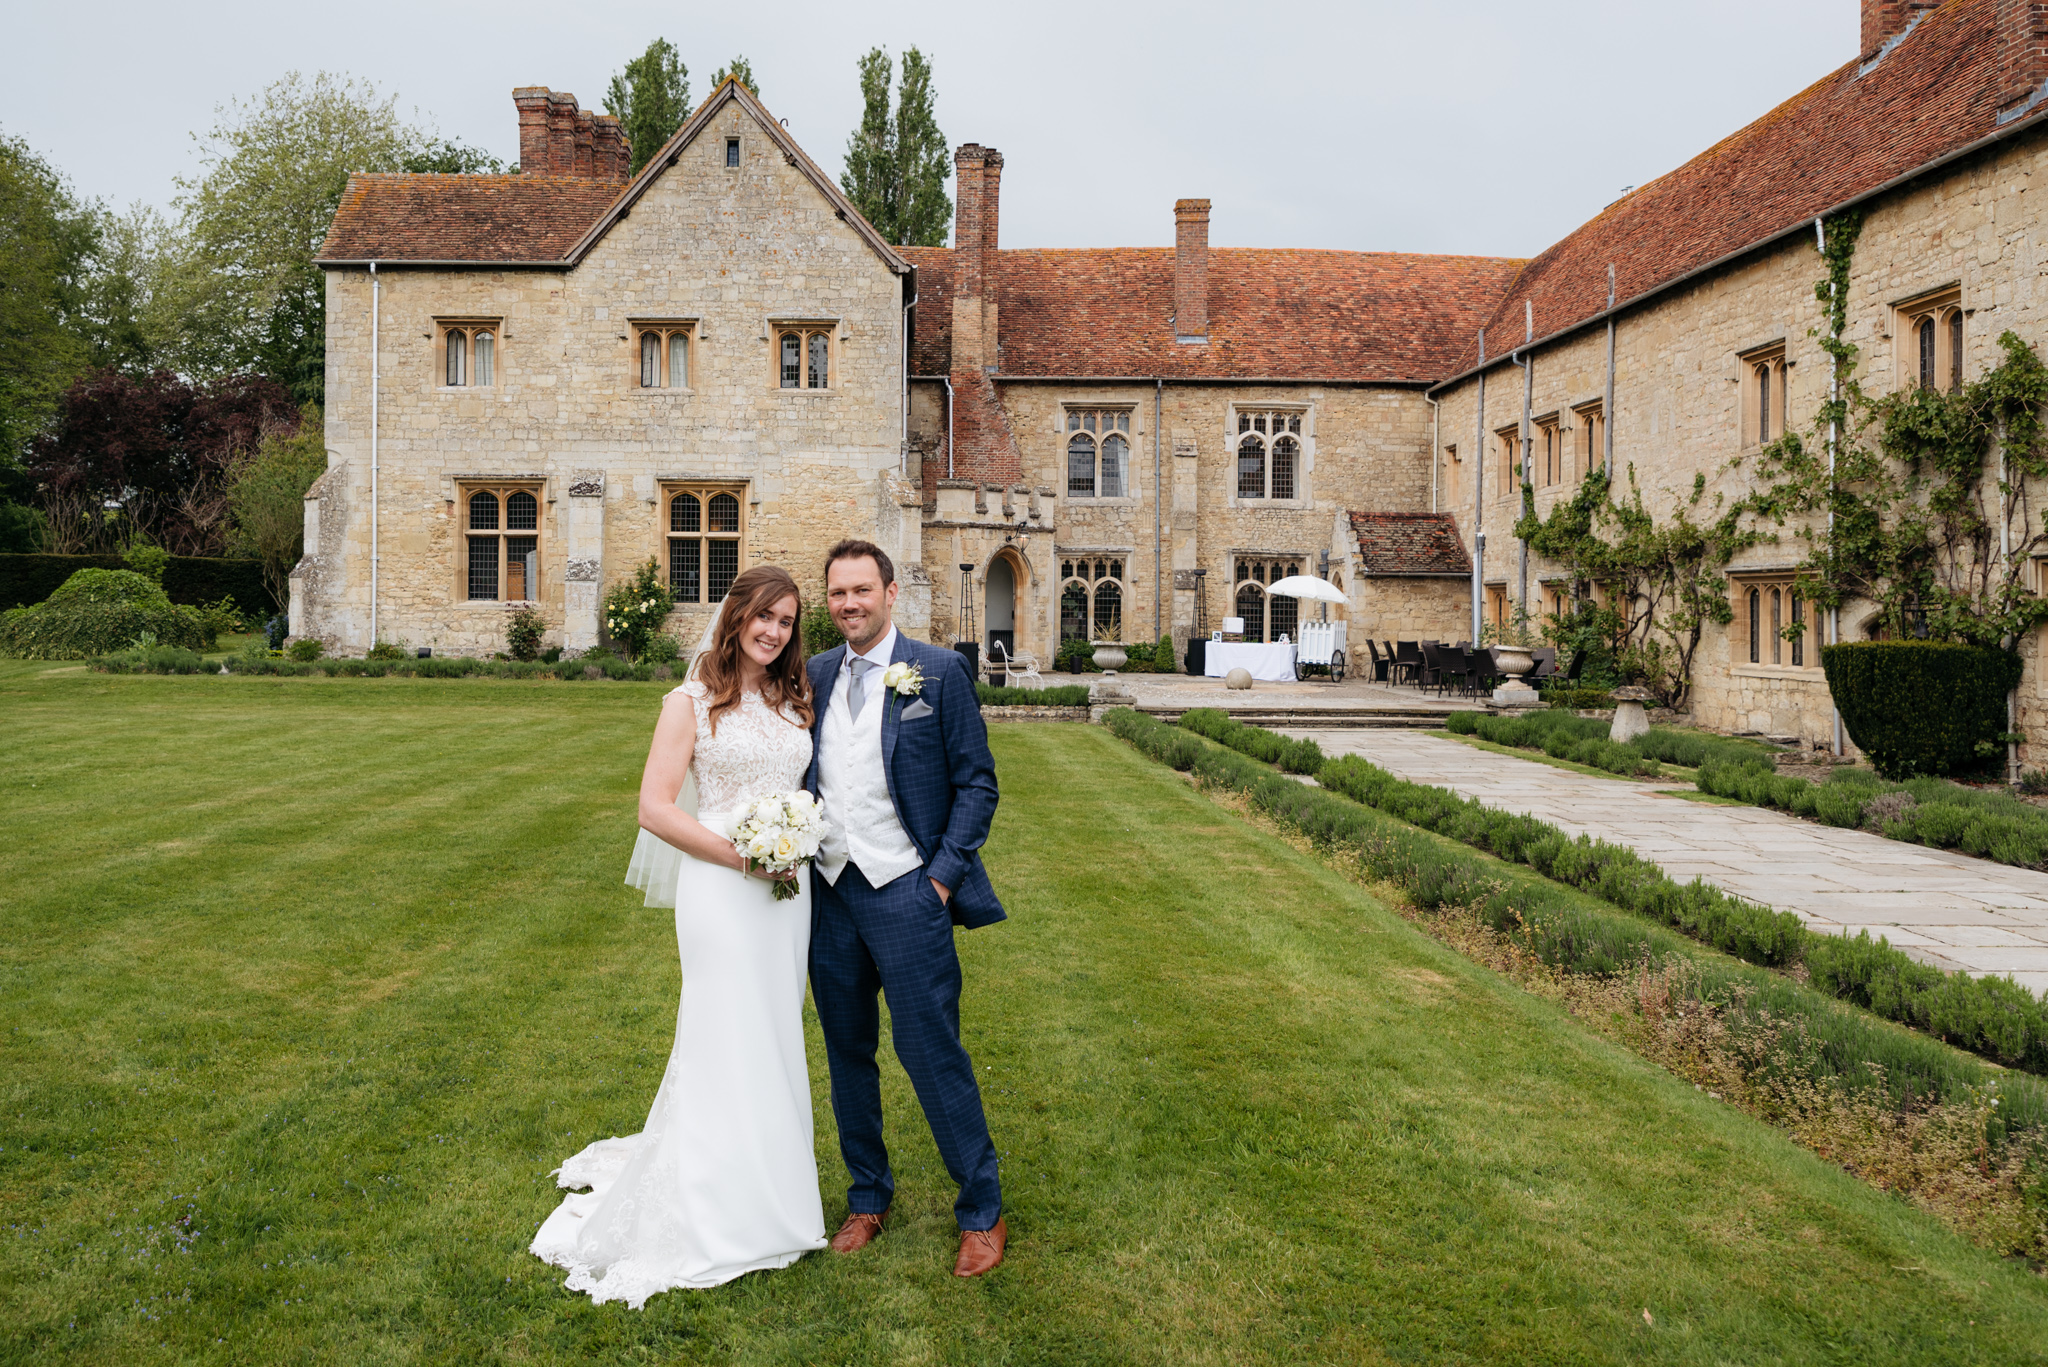 Racheal & Jonathan - Notley Abbey Learn more